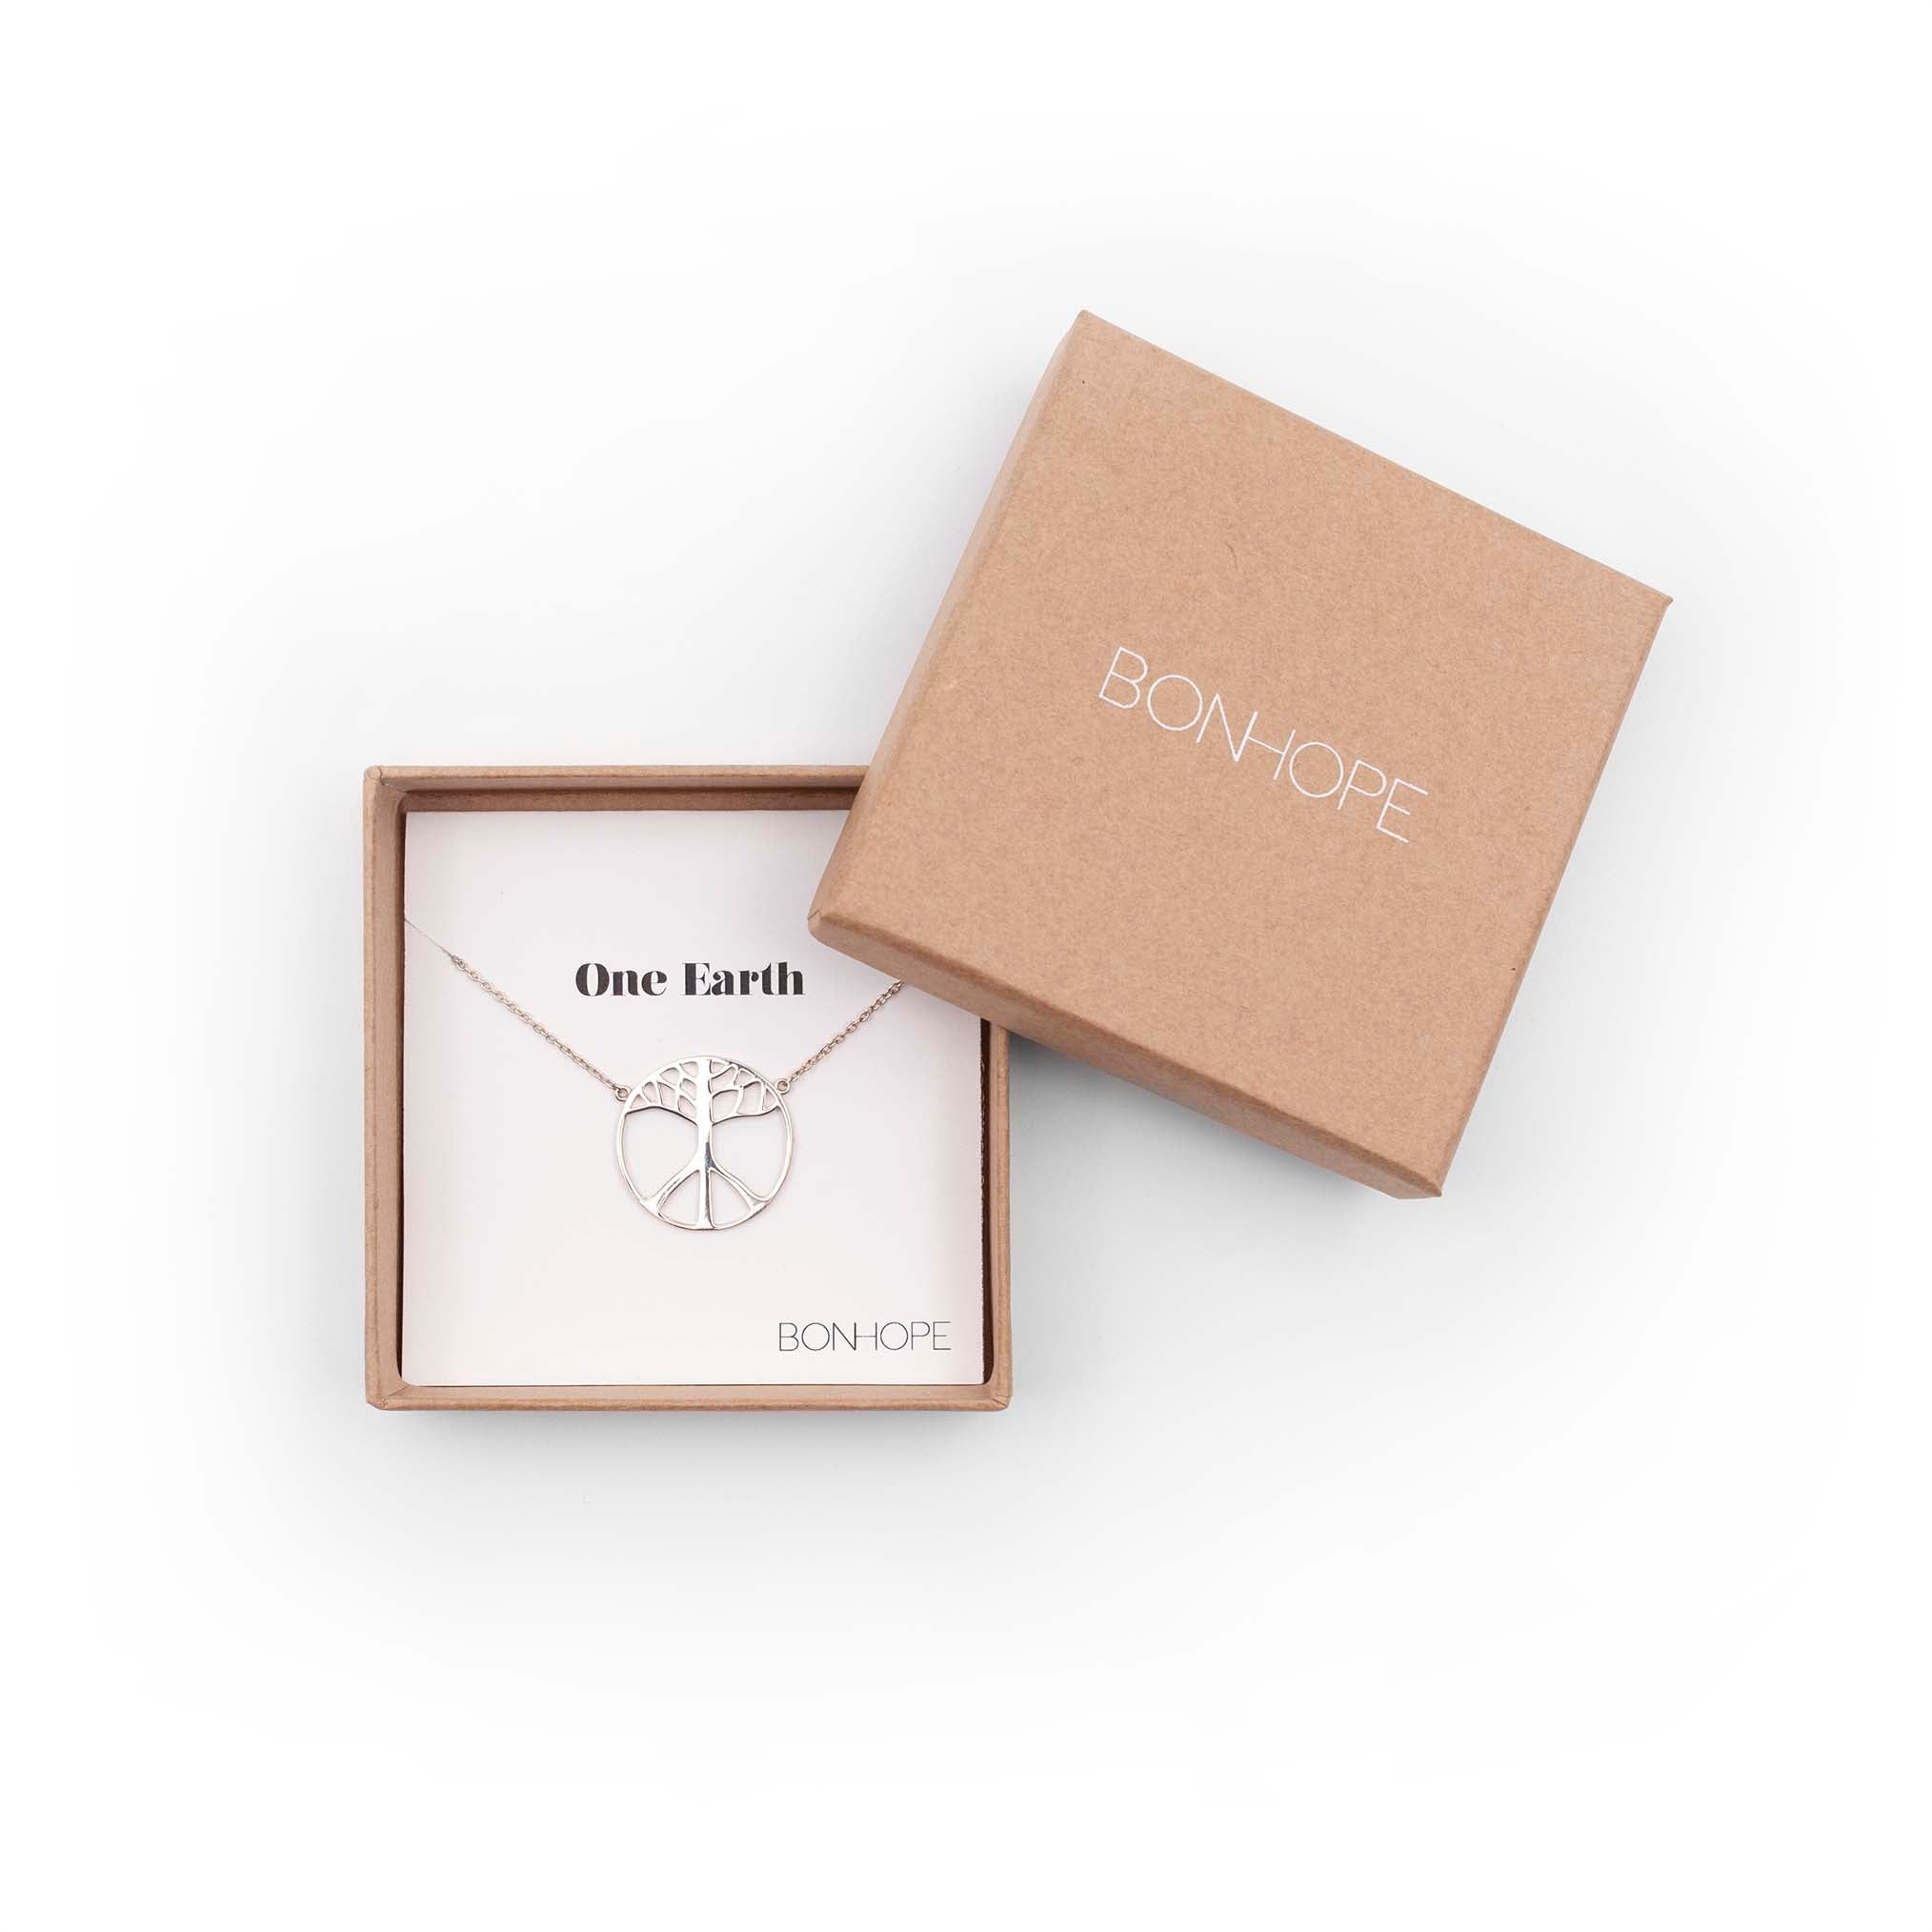 BON HOPE -One Earth Silver Necklace. The symbol is a merge of the tree of life and the classic peace symbol. 100% recycled silver jewelry ethically made in Bali.